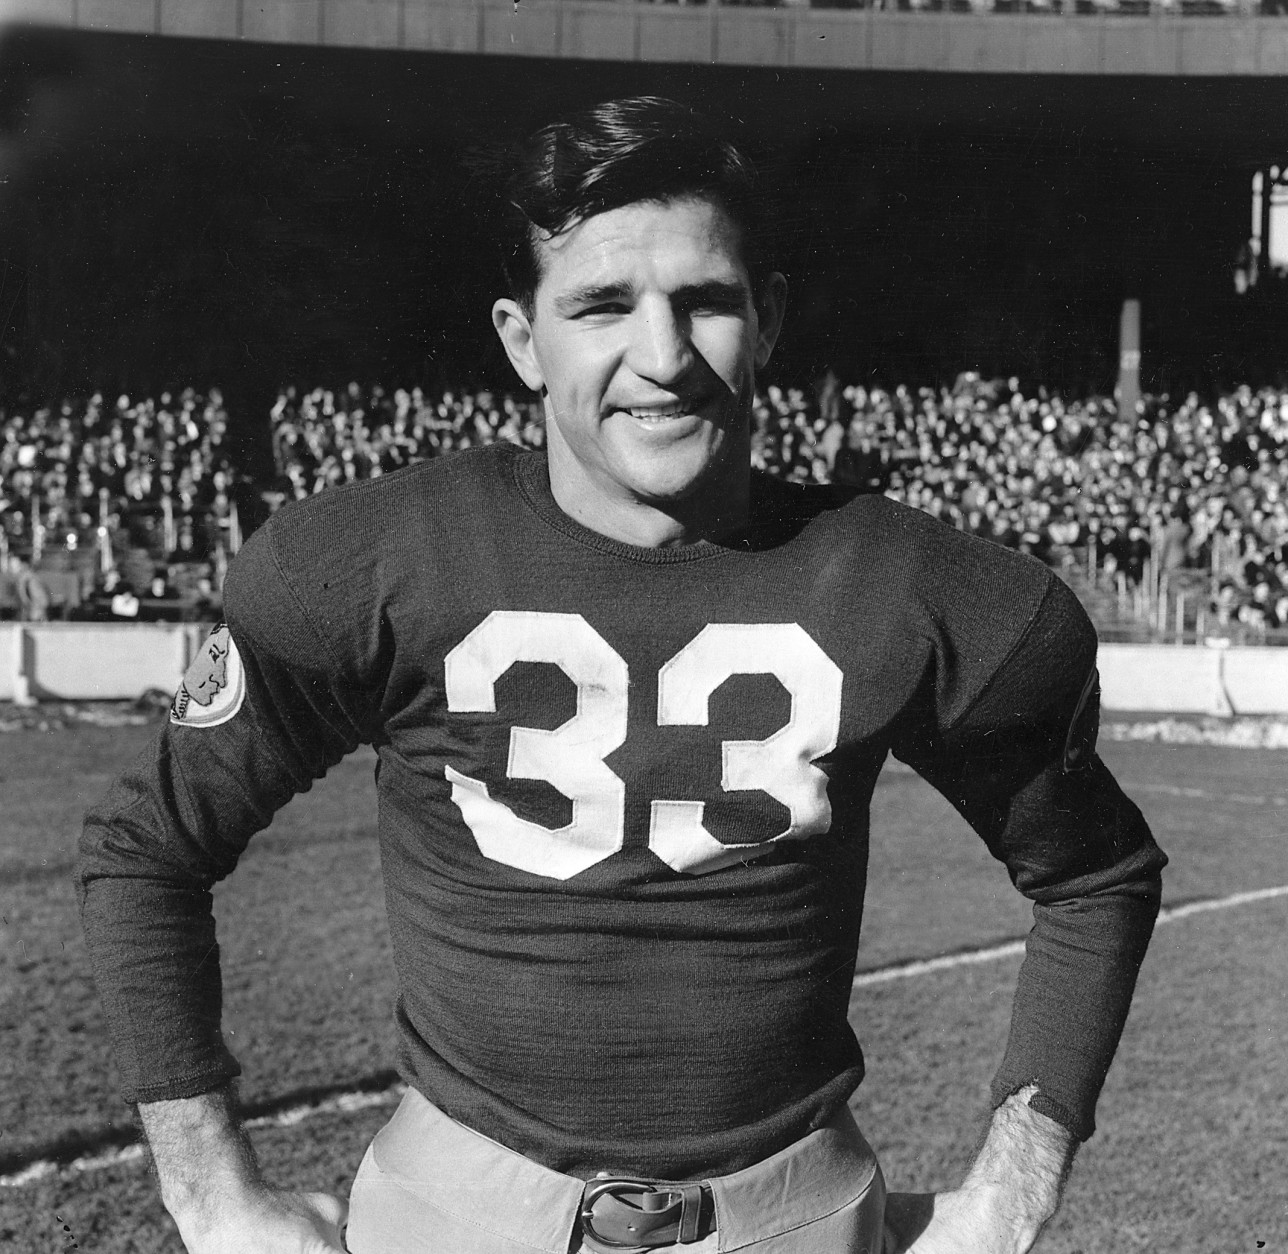 Sammy Baugh, quarterback for the Washington Redskins, poses at the Polo Grounds in New York City on Dec. 4, 1938.  (AP Photo)